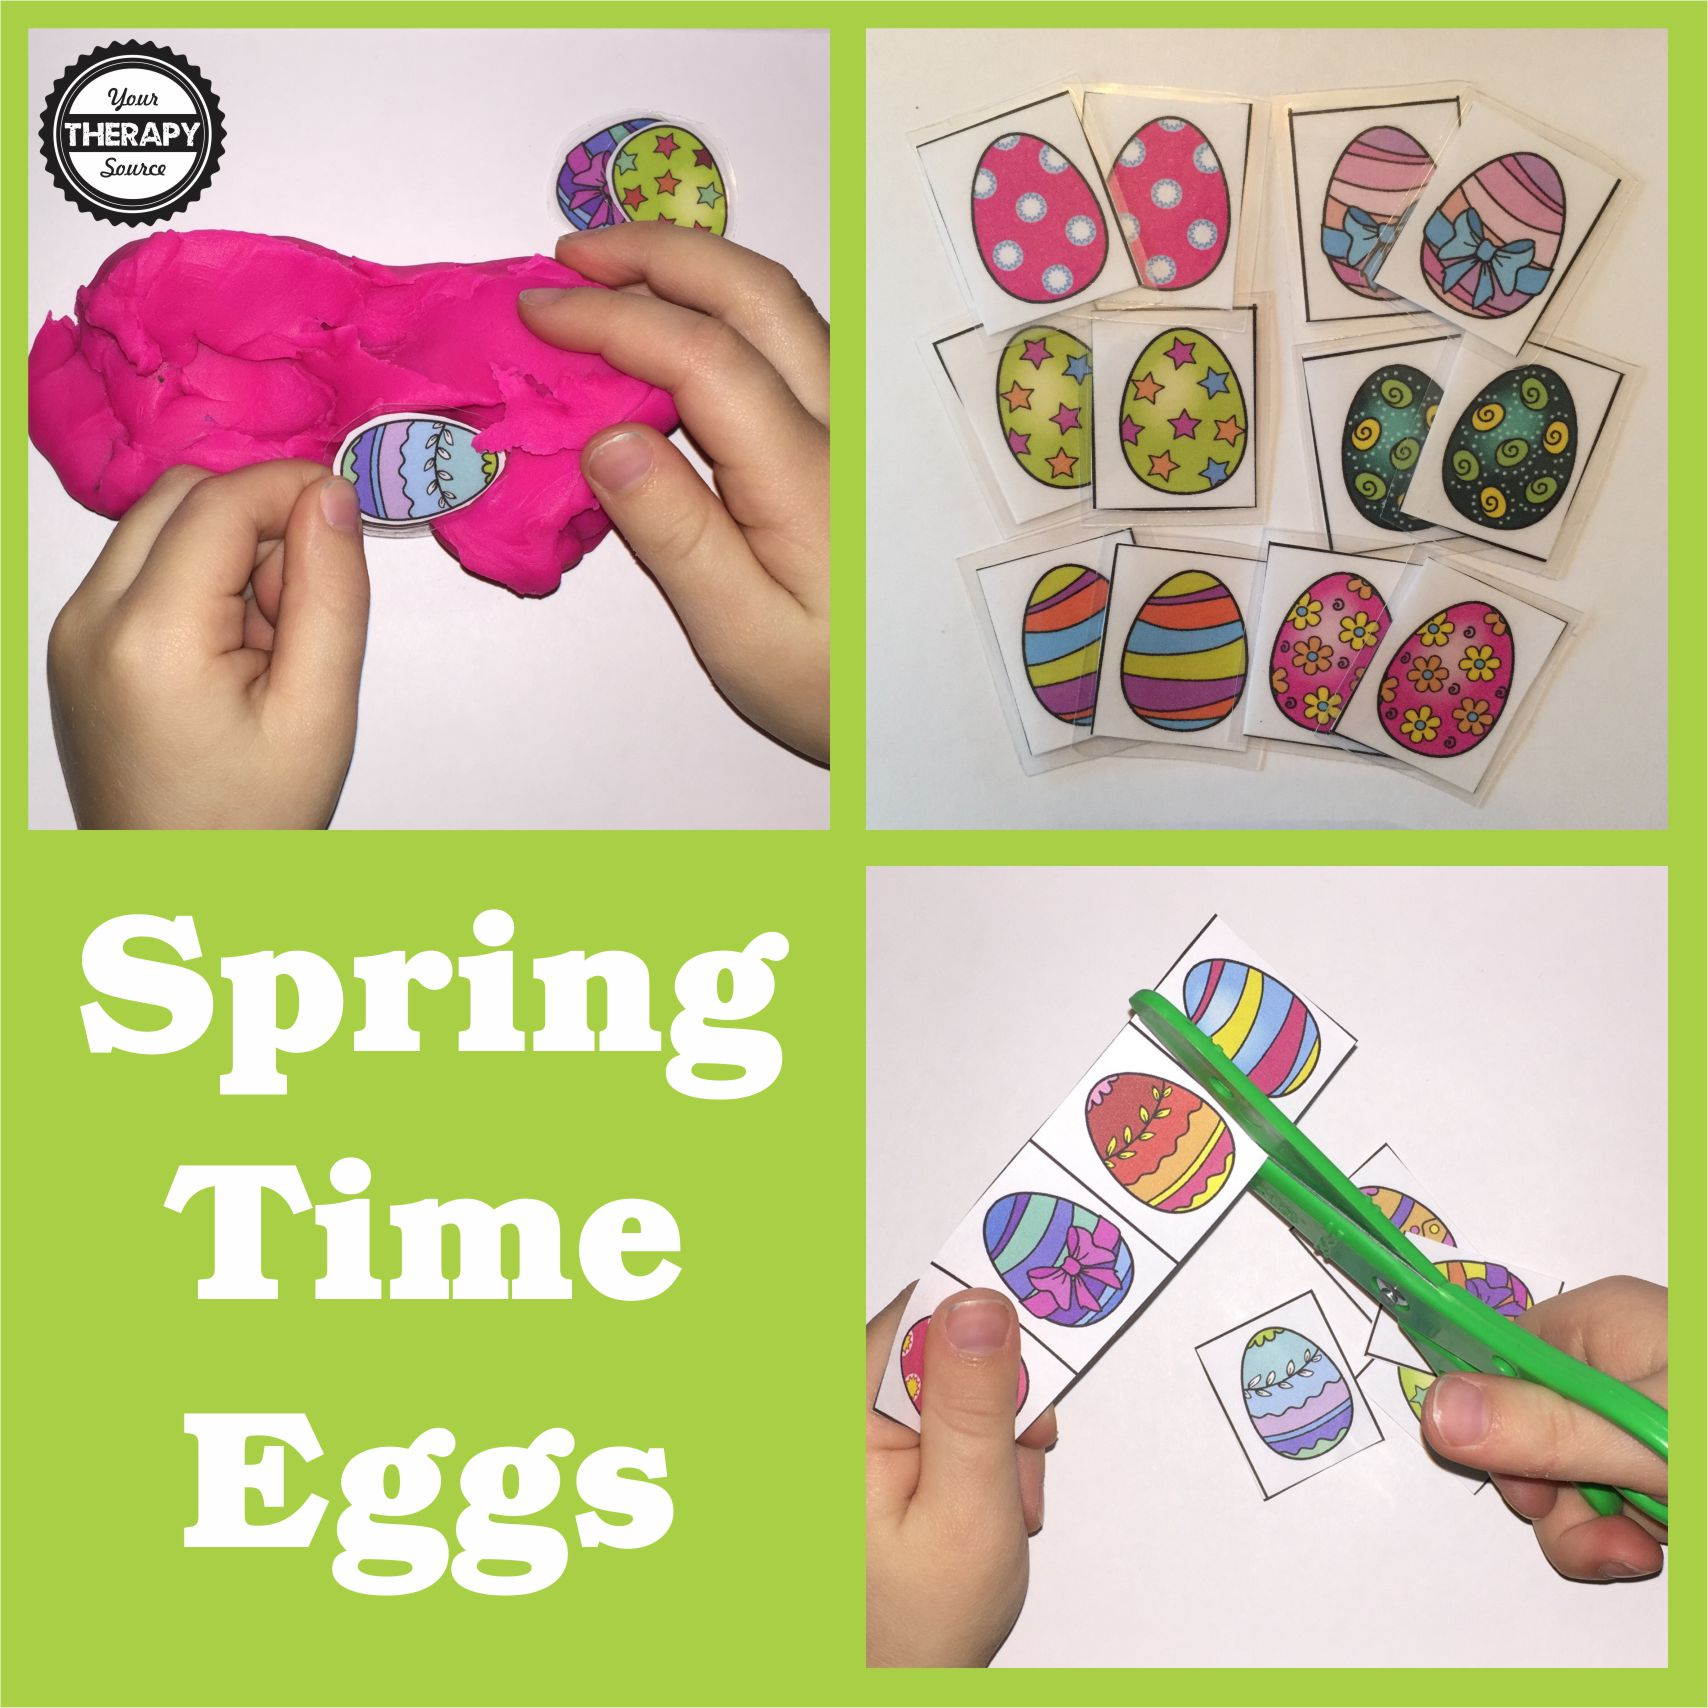 Spring Time Eggs